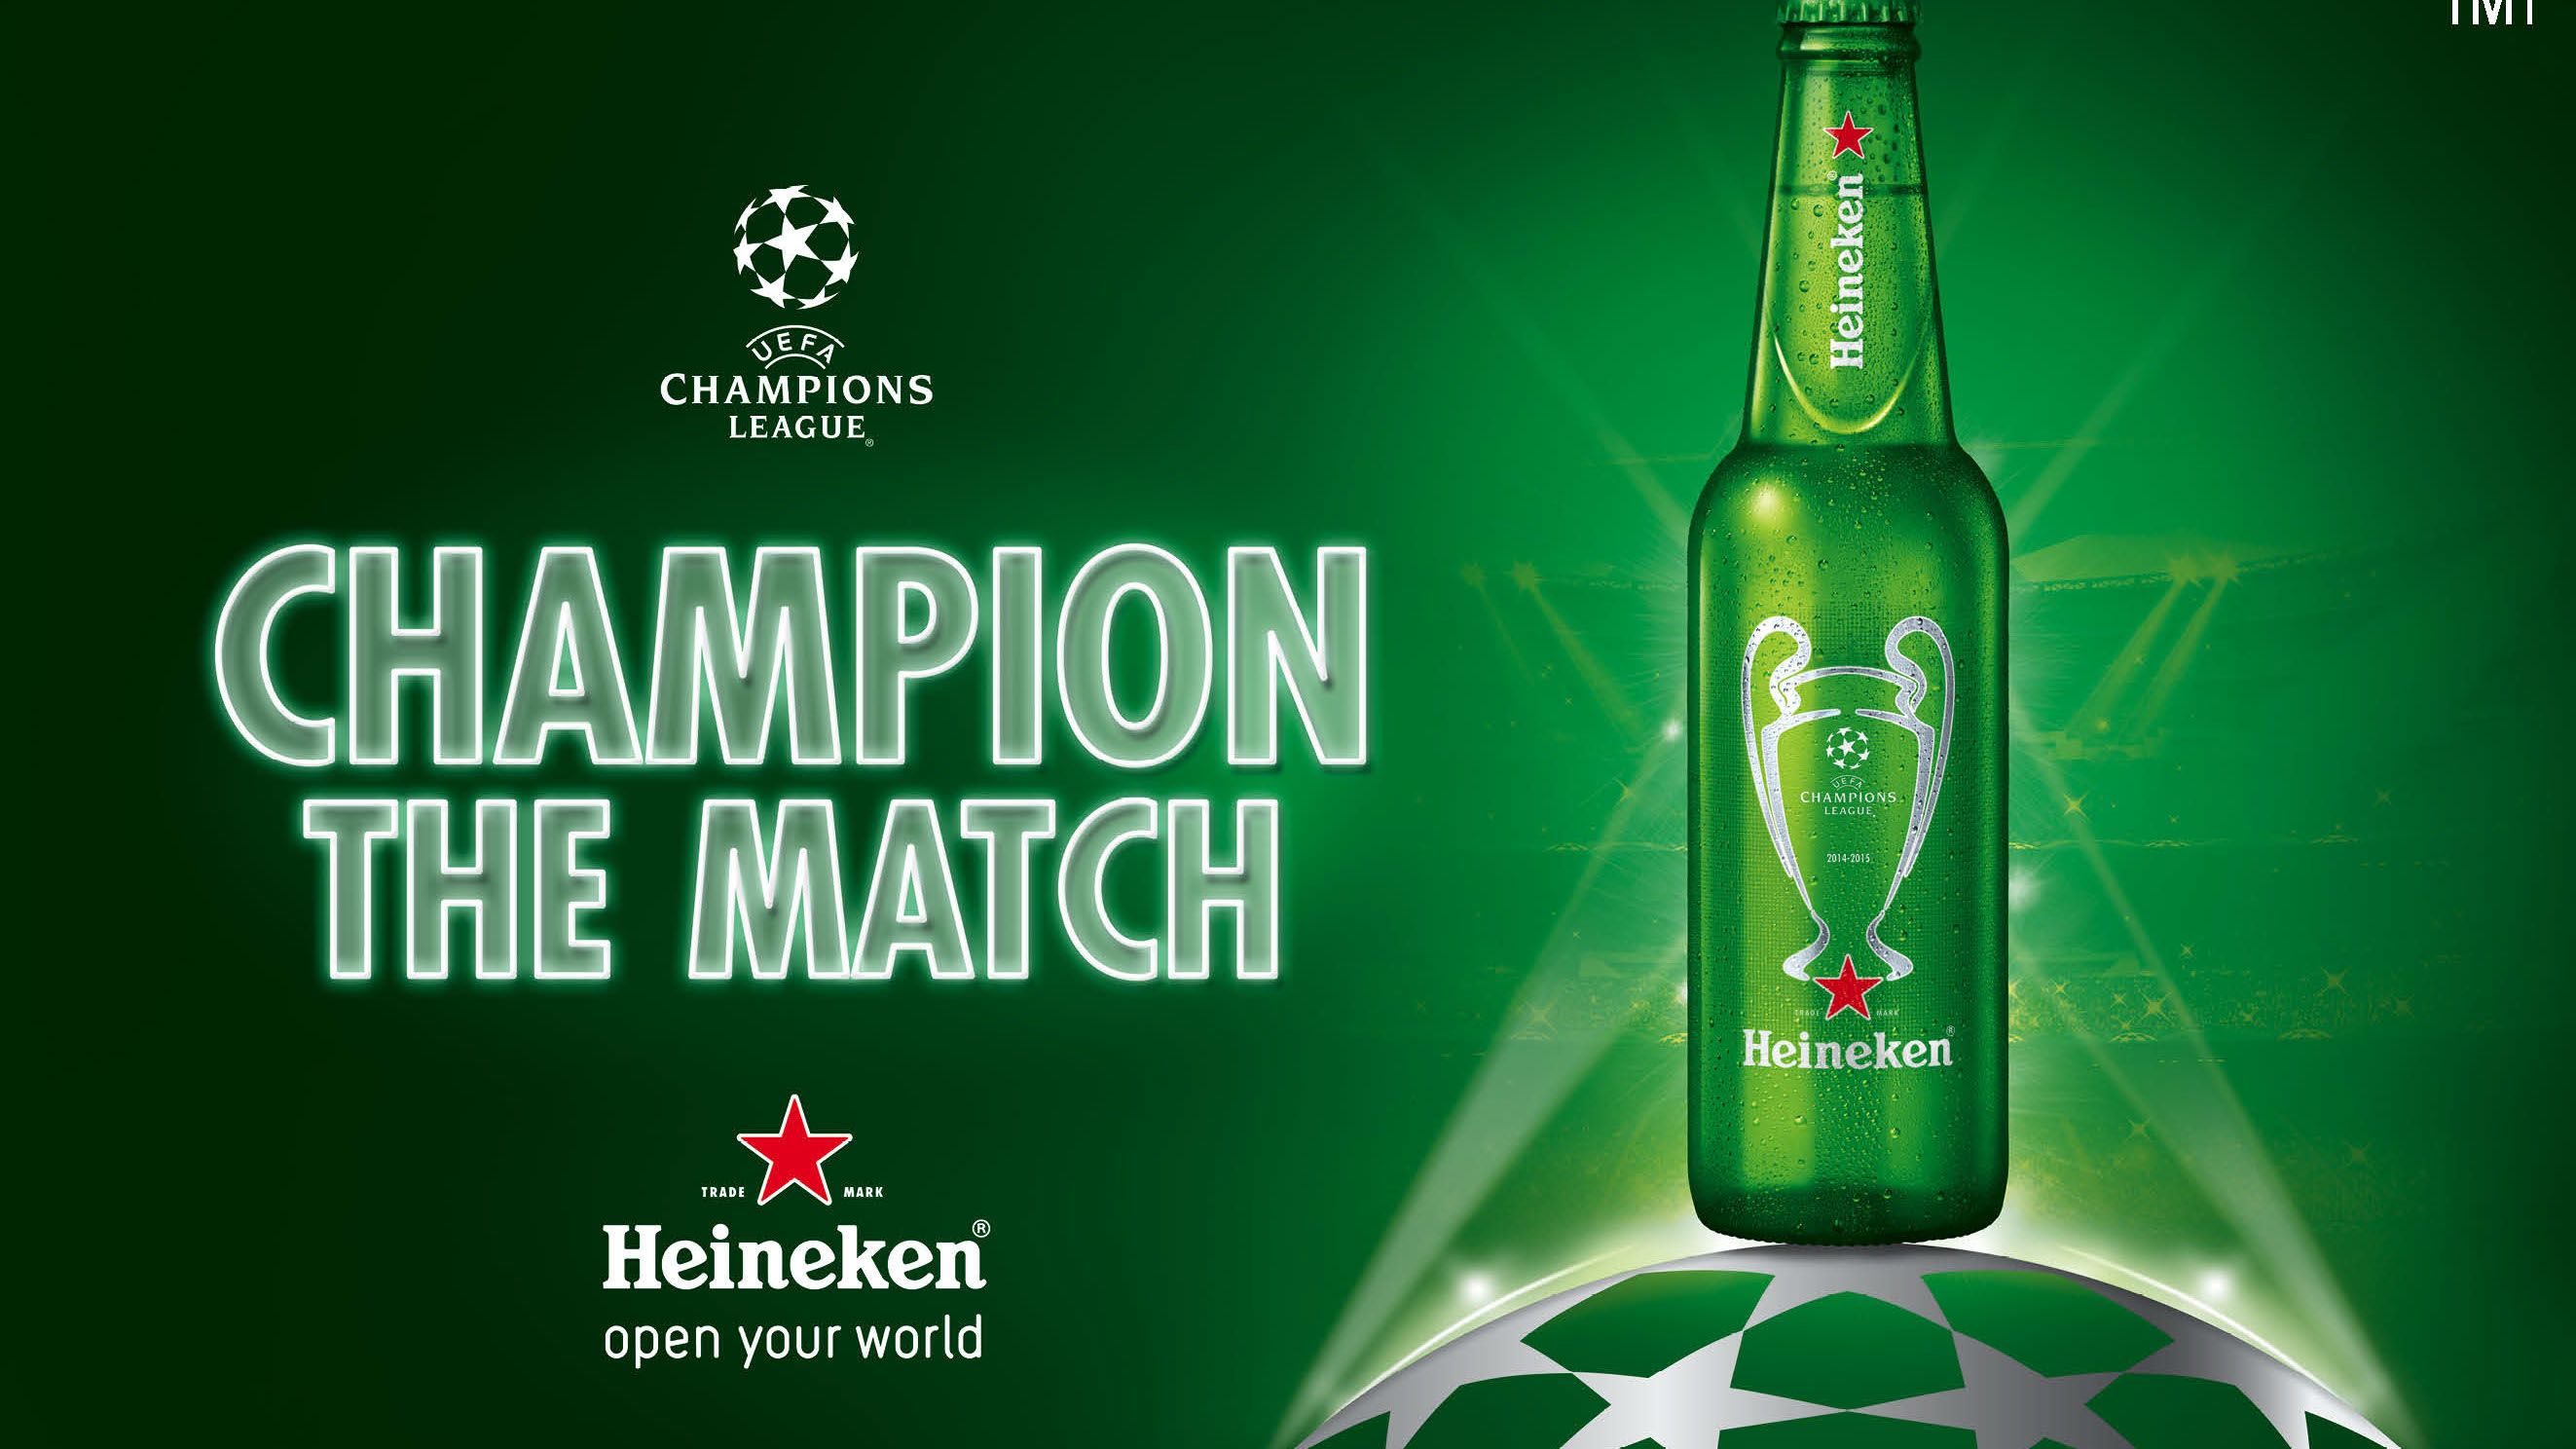 heineken just in time management